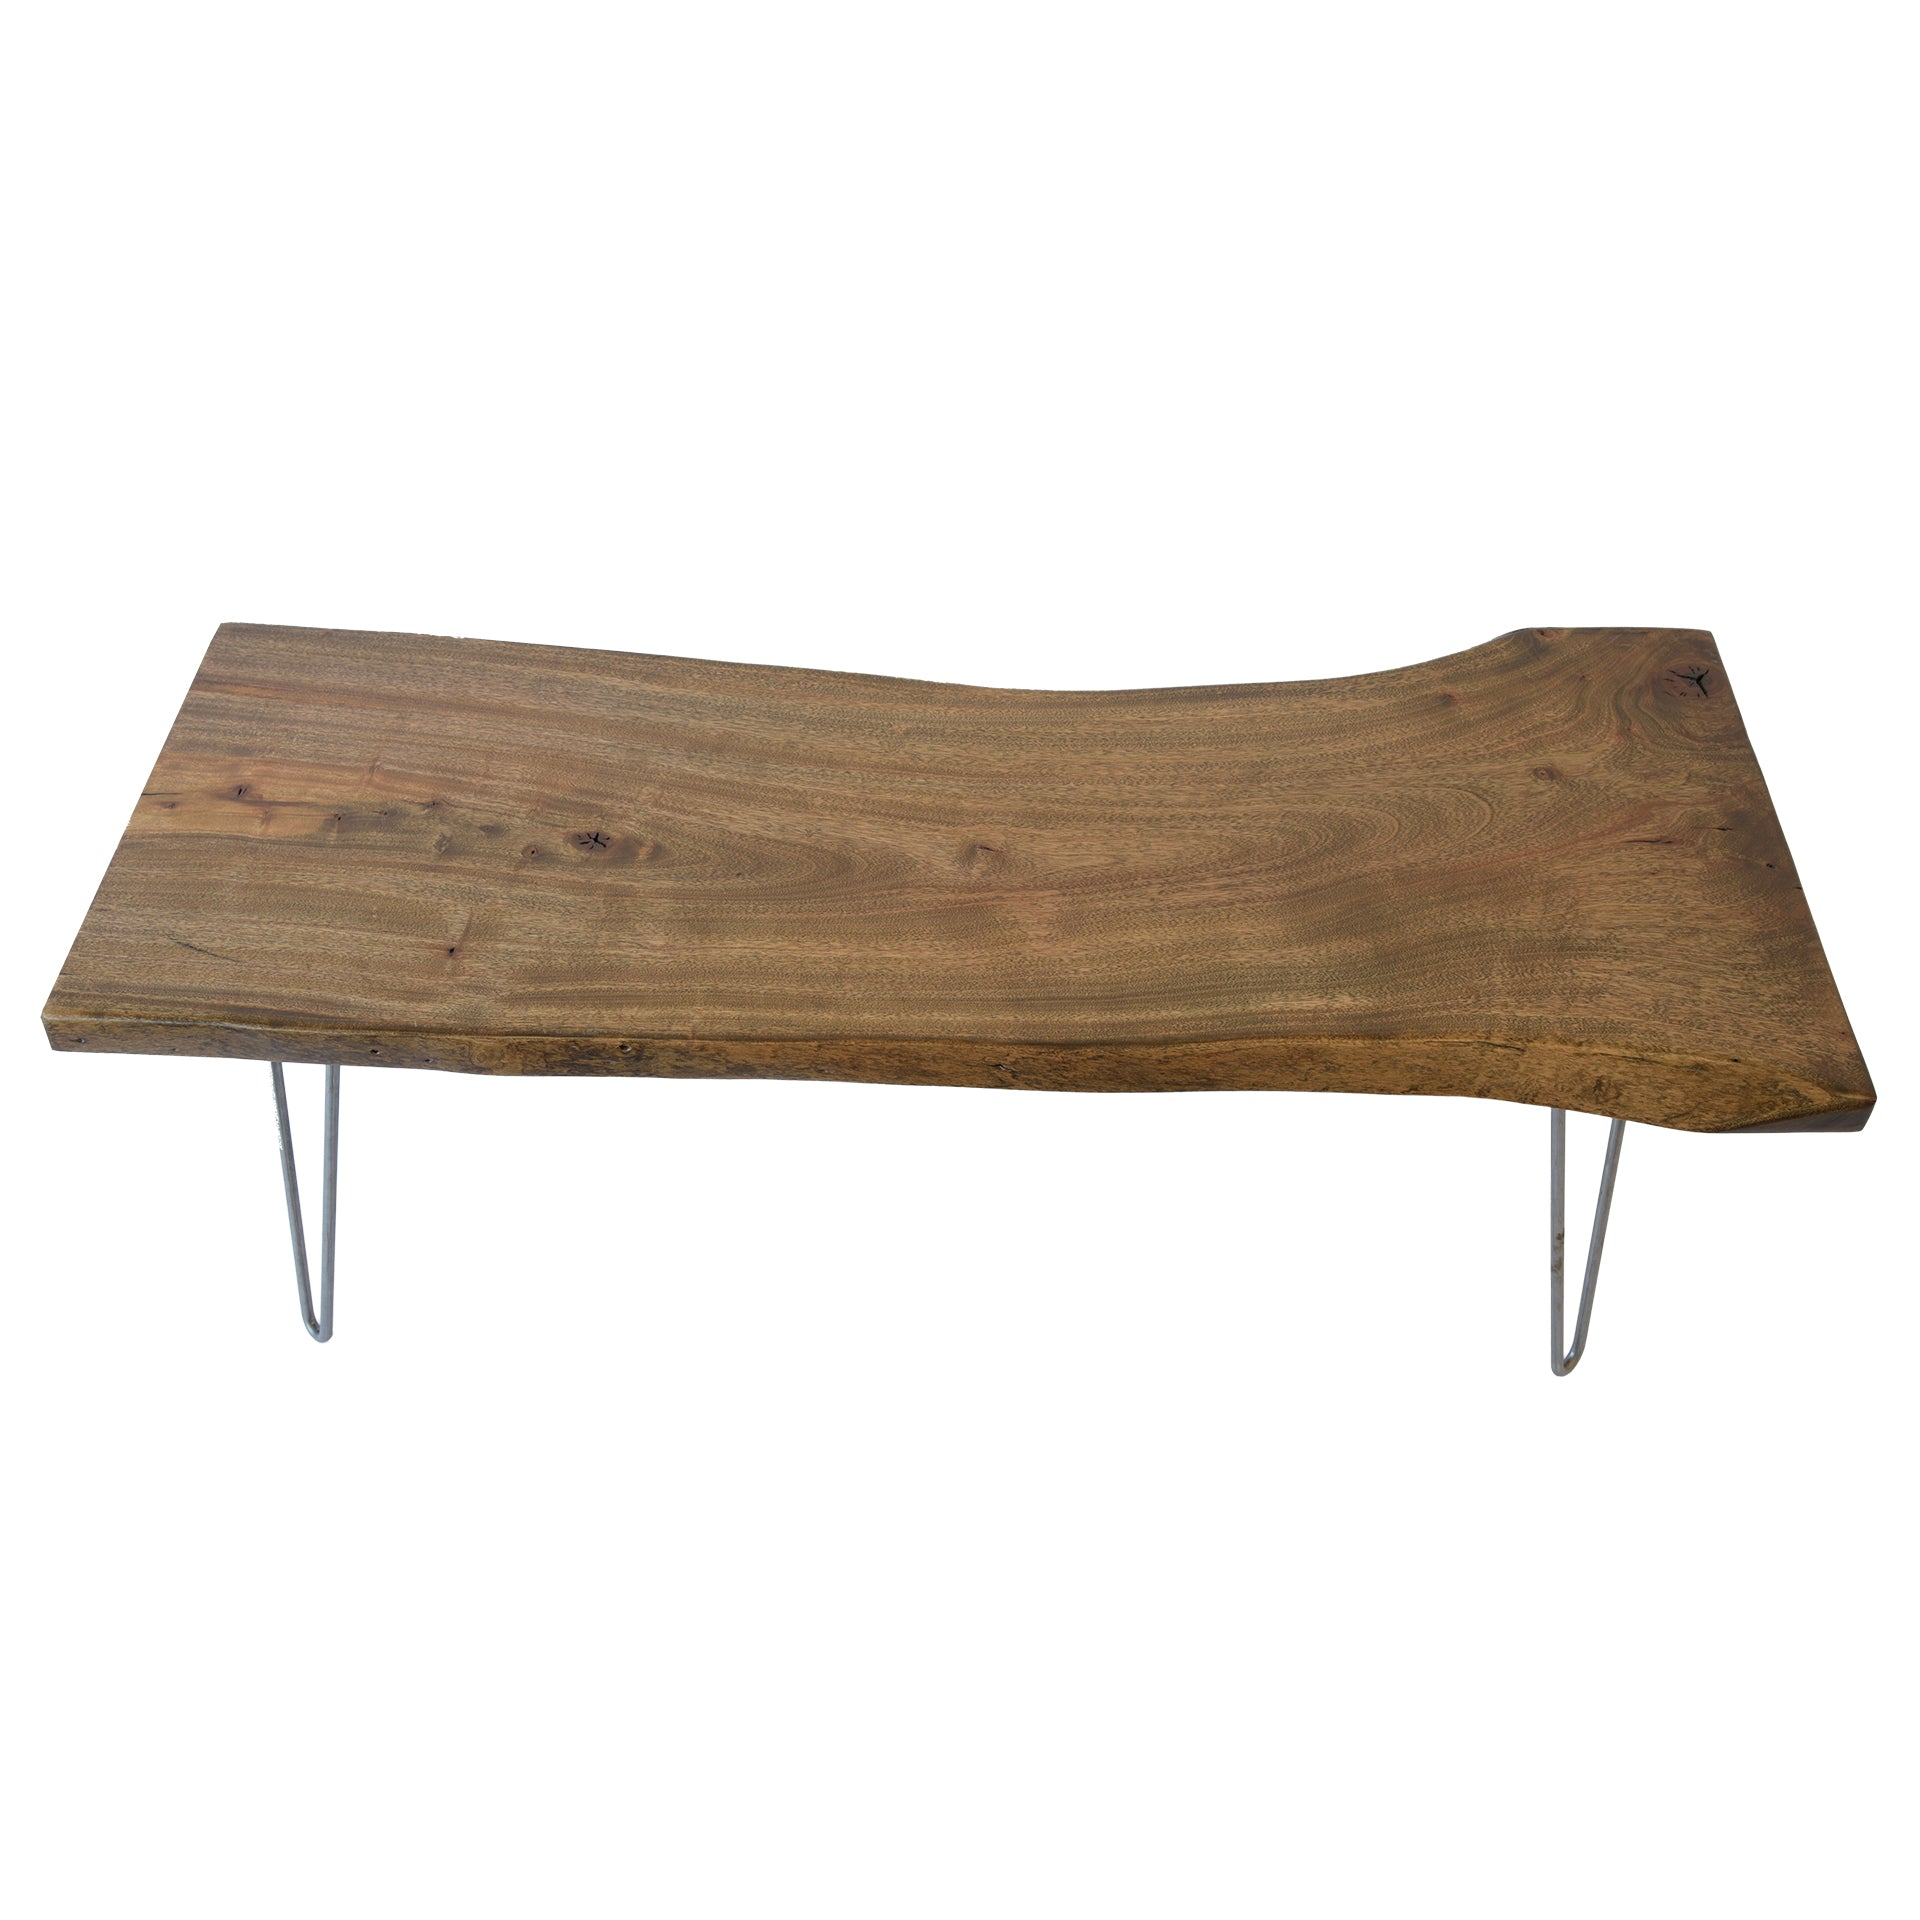 Rustic One Of A Kind Natural Teak Wood Slab Coffee Table: Reclaimed Live Edge Slab Furniture